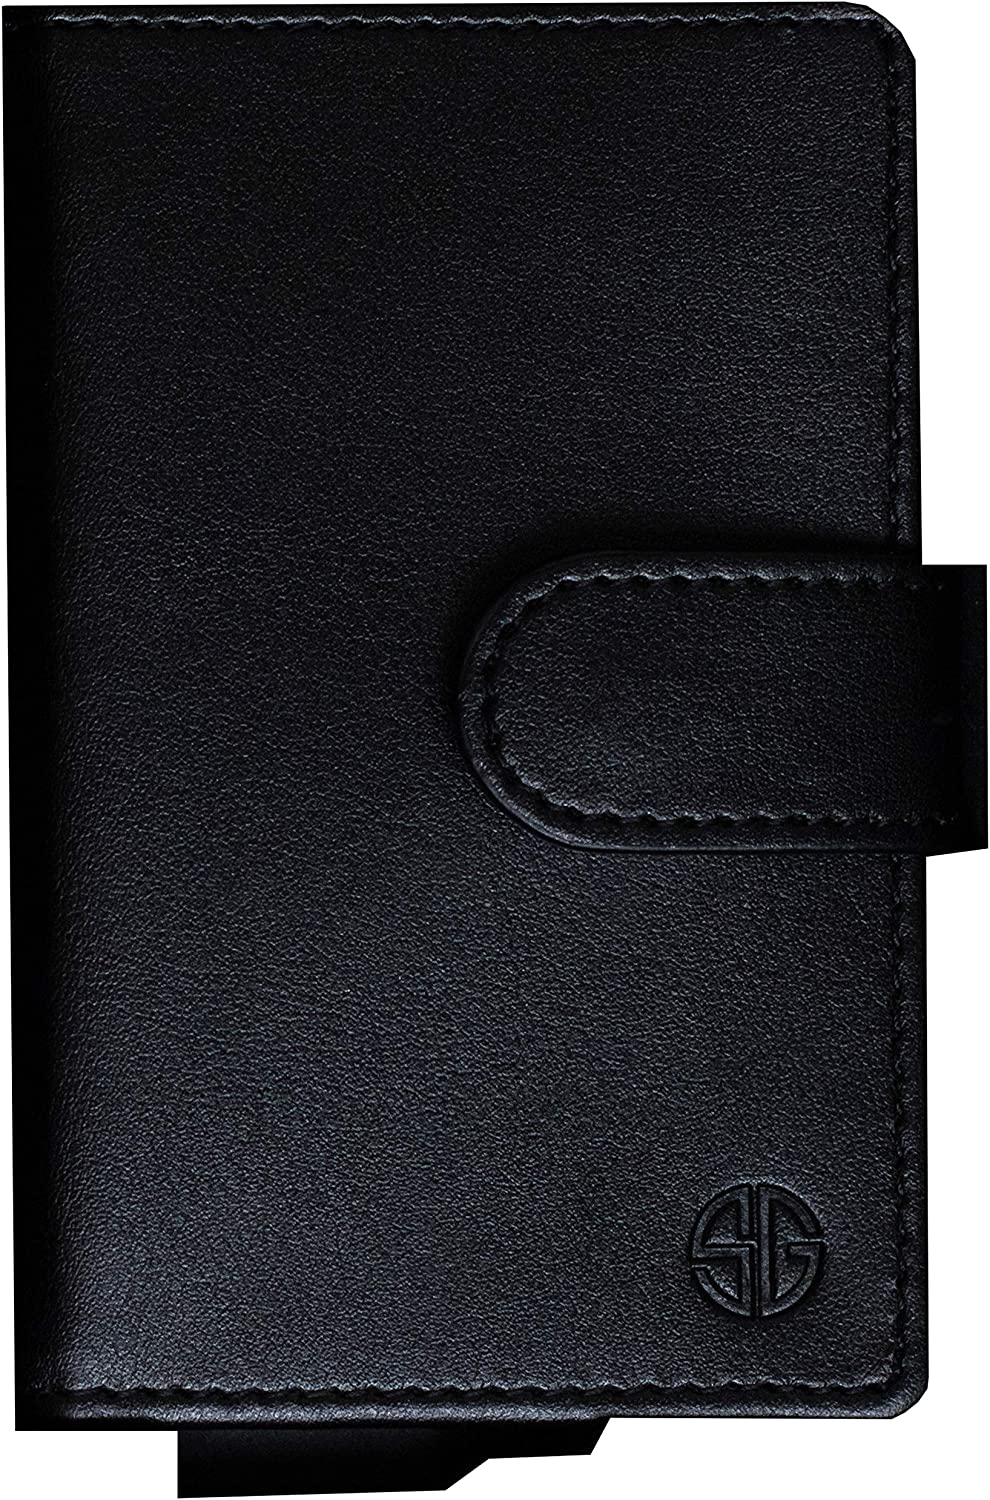 Wallet Mens Aluminum Credit Card Holder RFID Protection Black Anodized